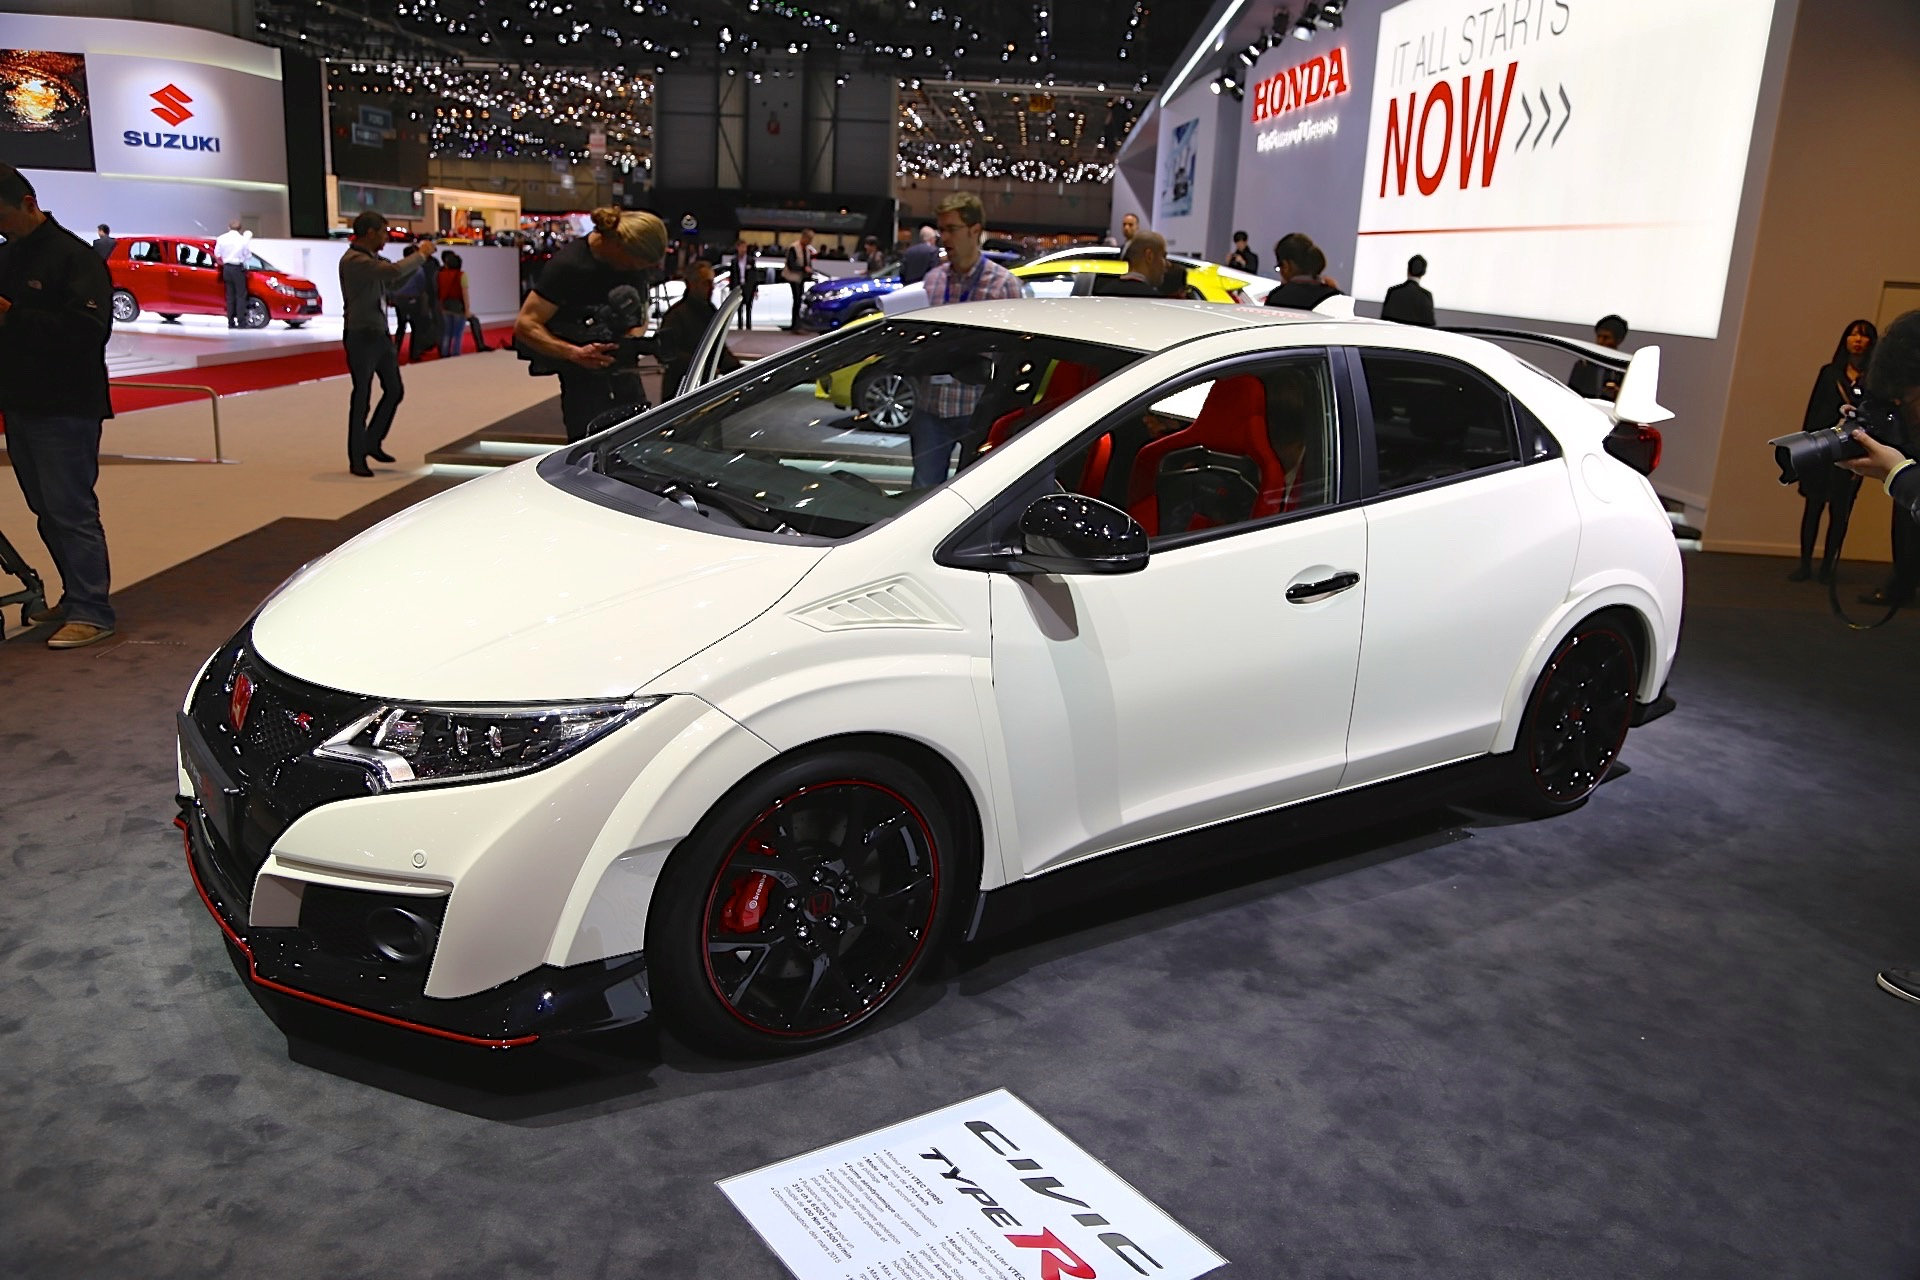 2016 Civic Type R Price >> 2015 Honda Civic Type R 305 Hp And 0 62 Mph In 5 7 Seconds